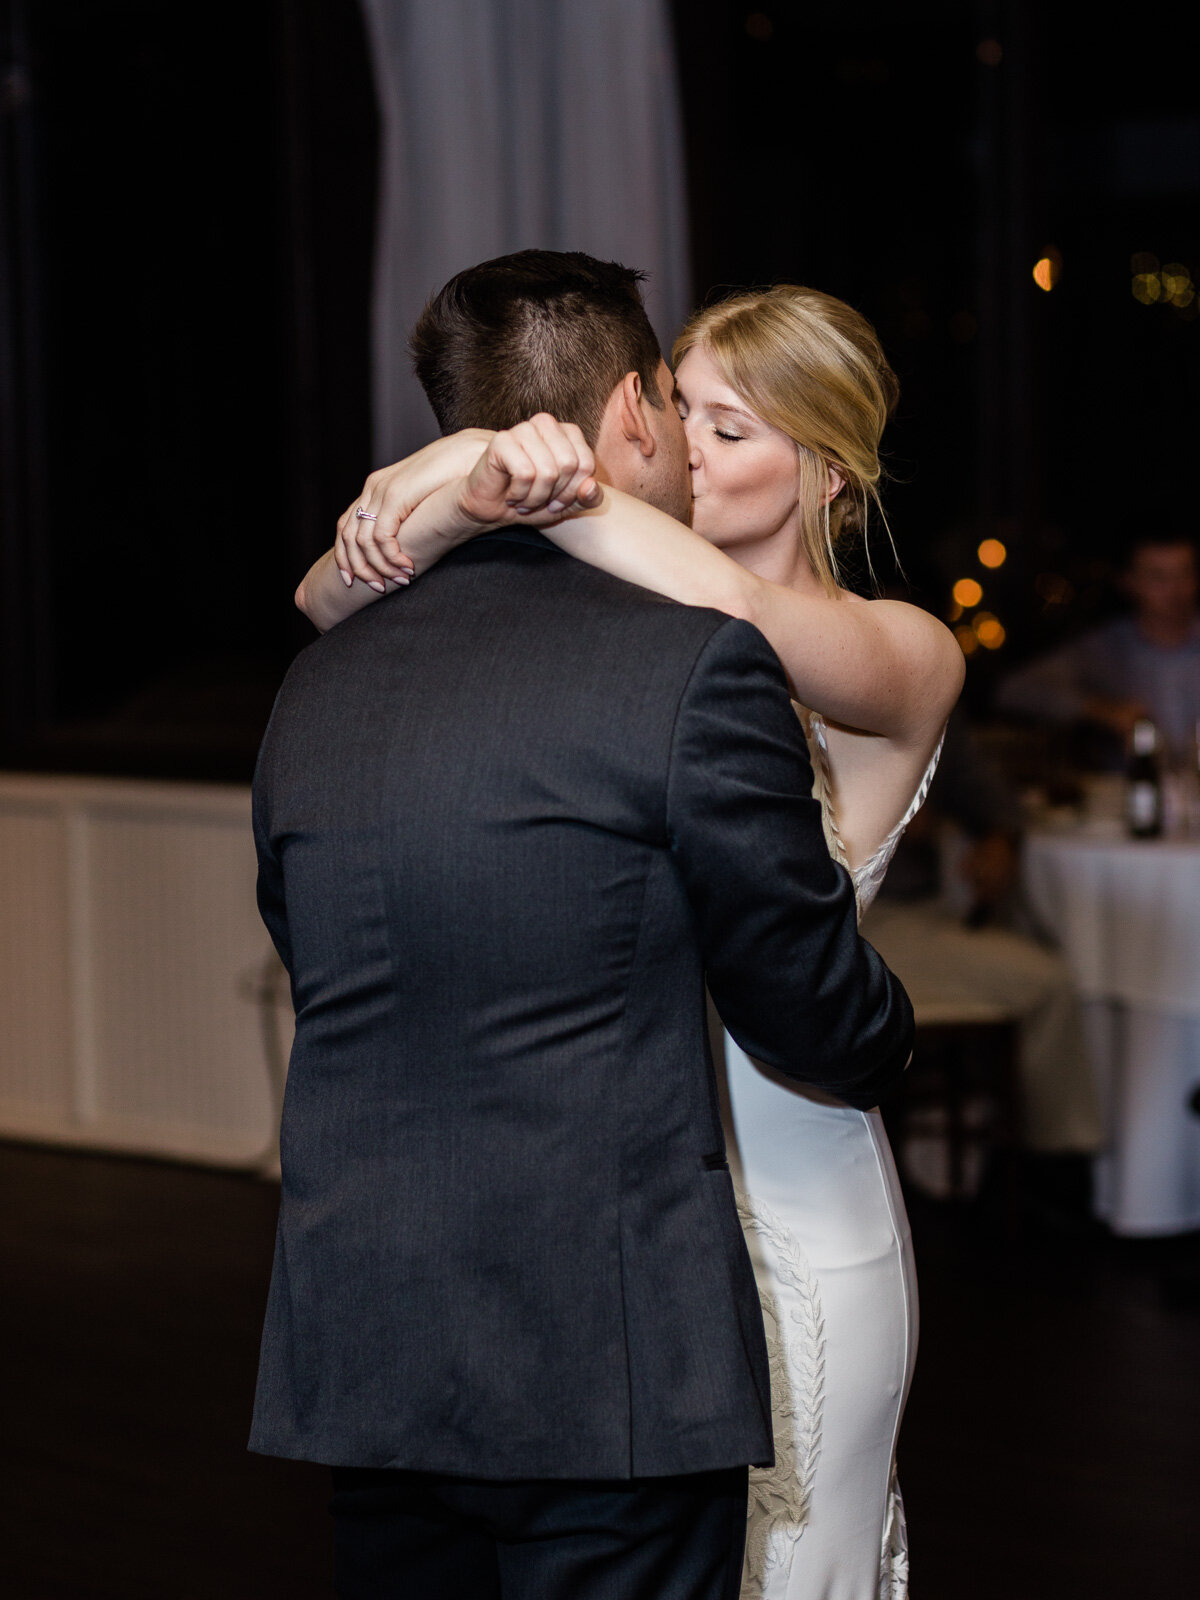 Classic Wedding Photography at the Club at Hillbrook-51.jpg